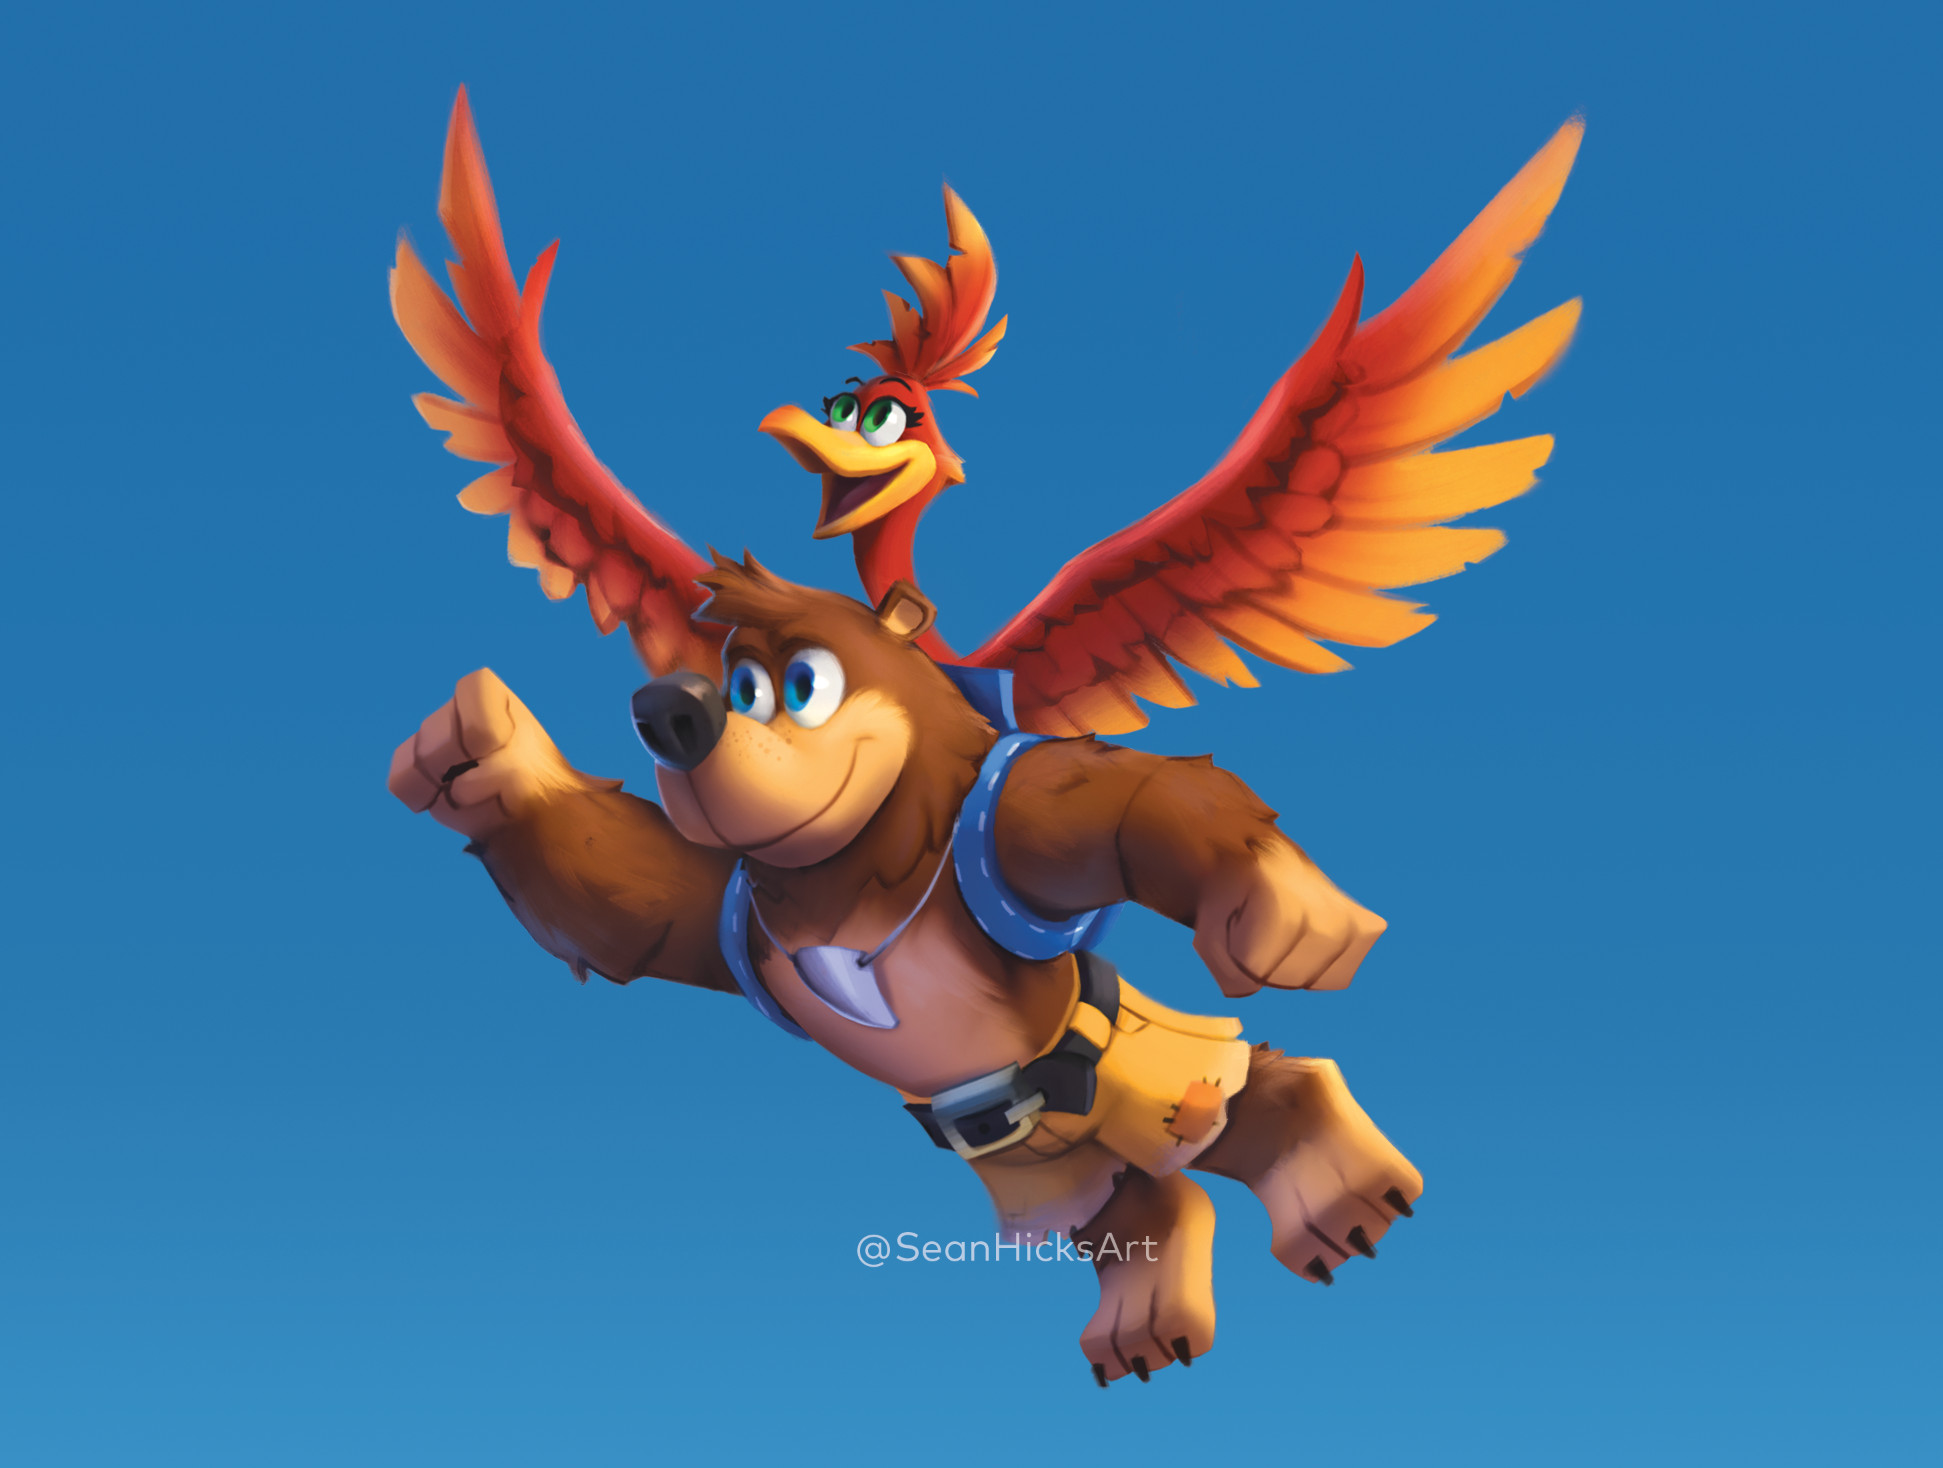 The bear and bird flying! Showcasing a stylized art direction for Banjo & Kazooie!